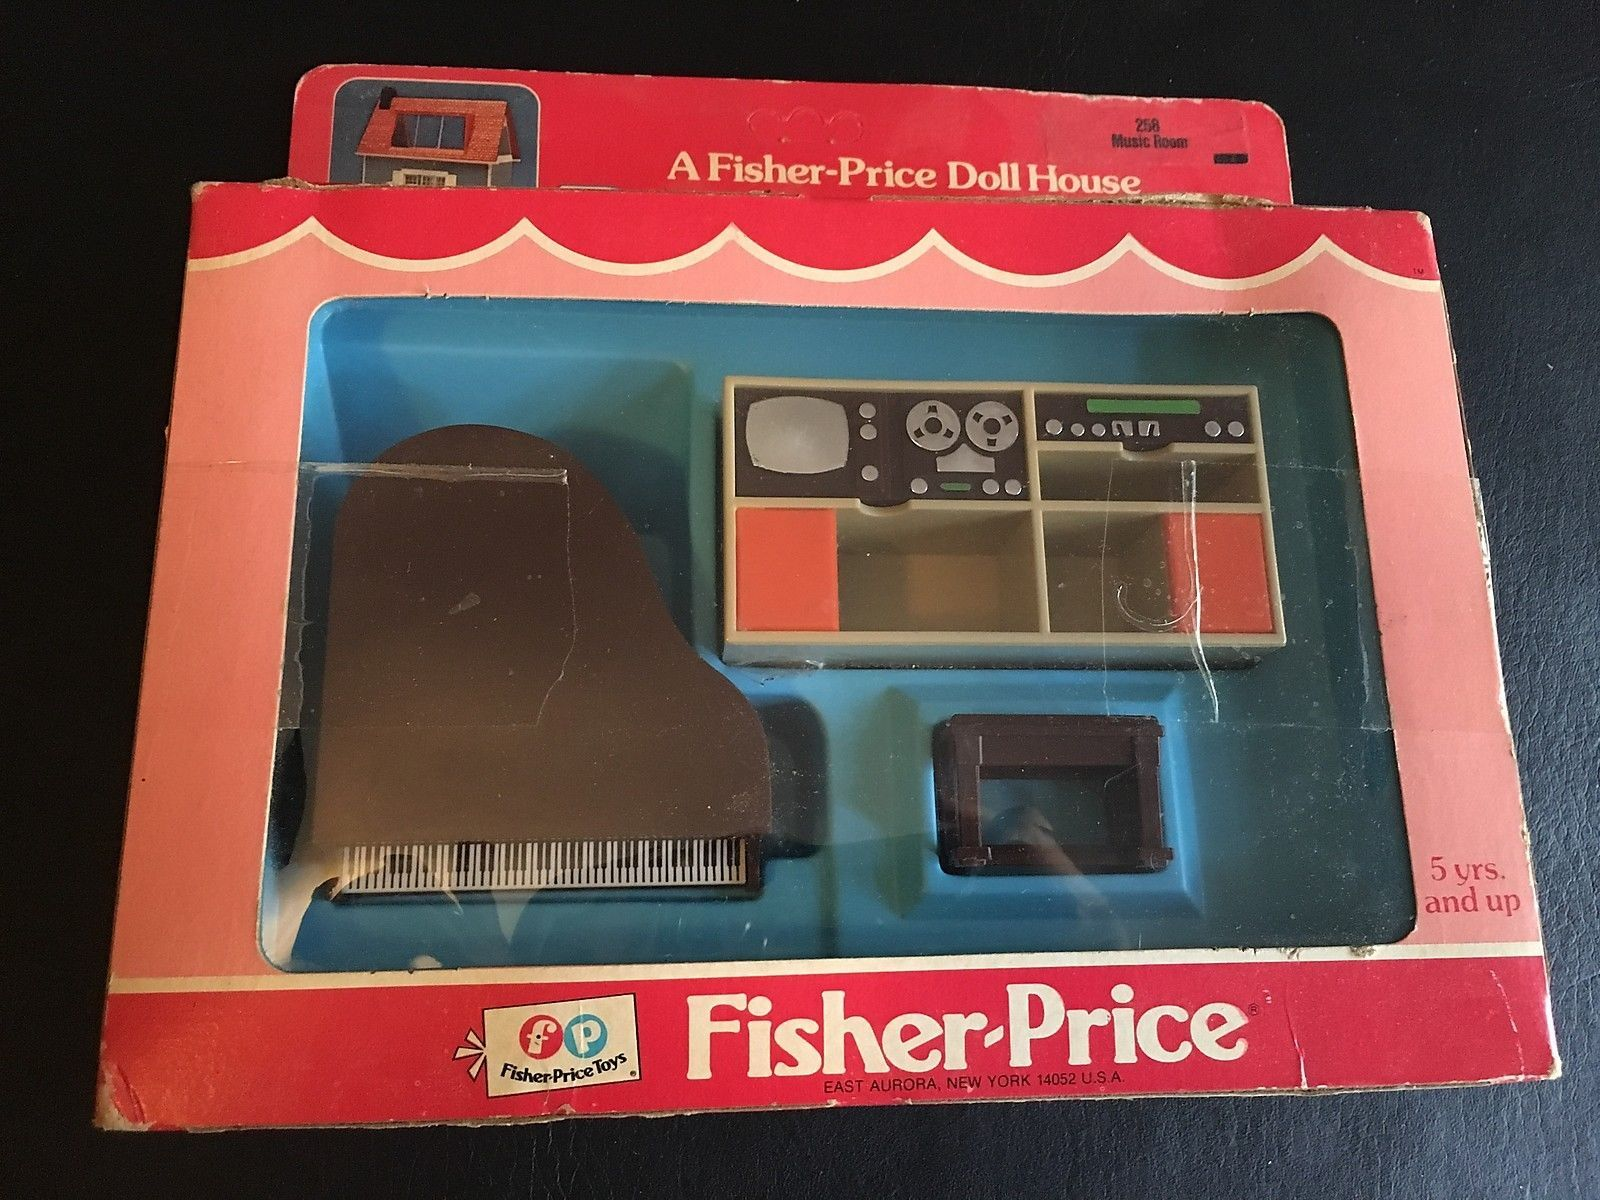 VINTAGE FISHER PRICE DOLL HOUSE DECORATOR SET MUSIC ROOM PIANO BENCH TV NEW